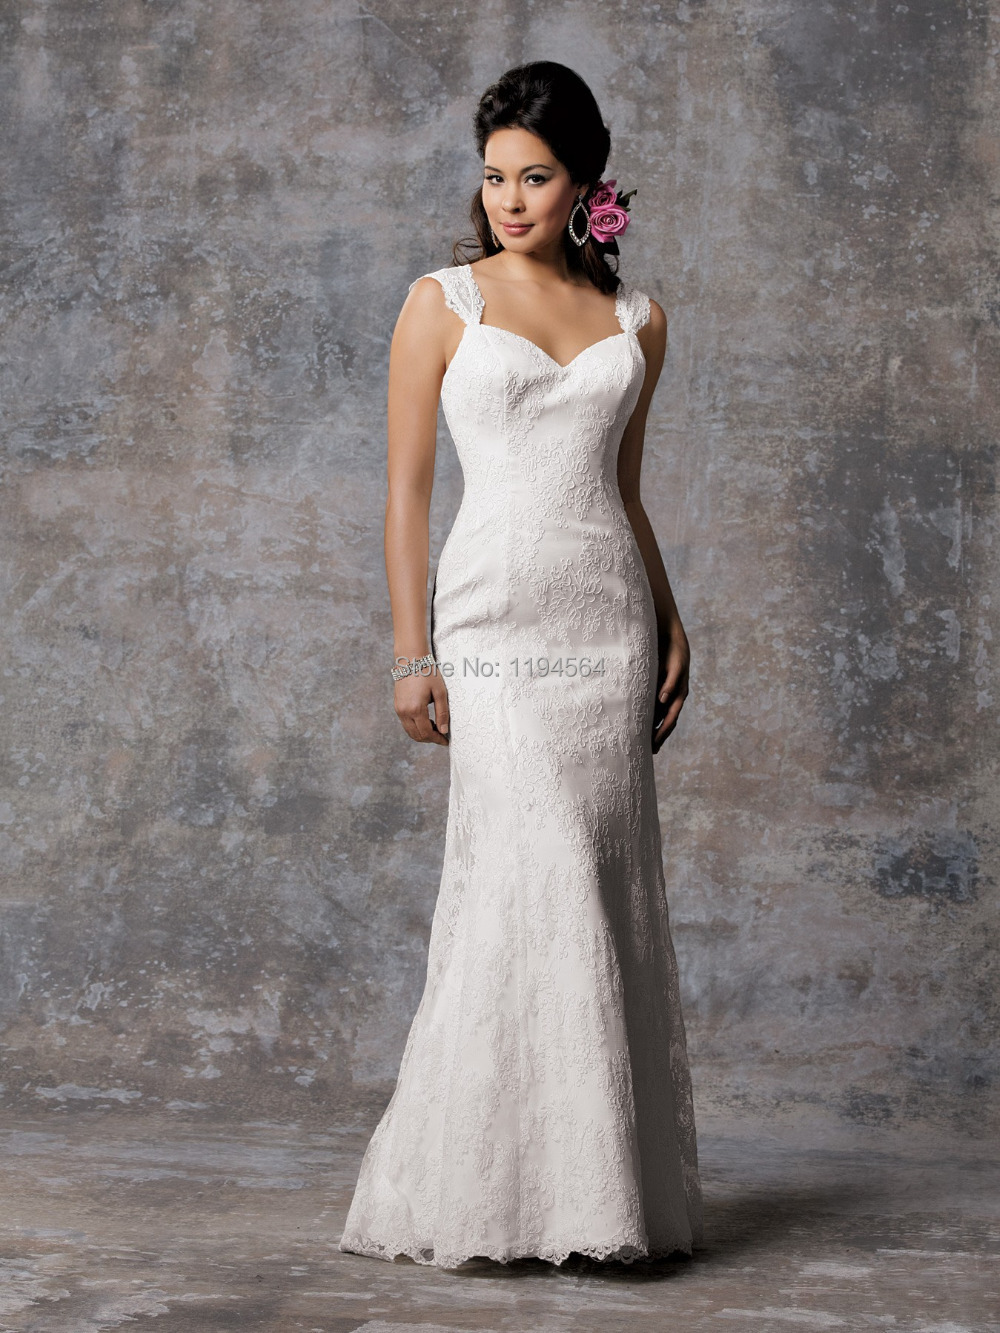 Free shipping 2014 lace wedding dresses a line bridal for Wedding dress no train